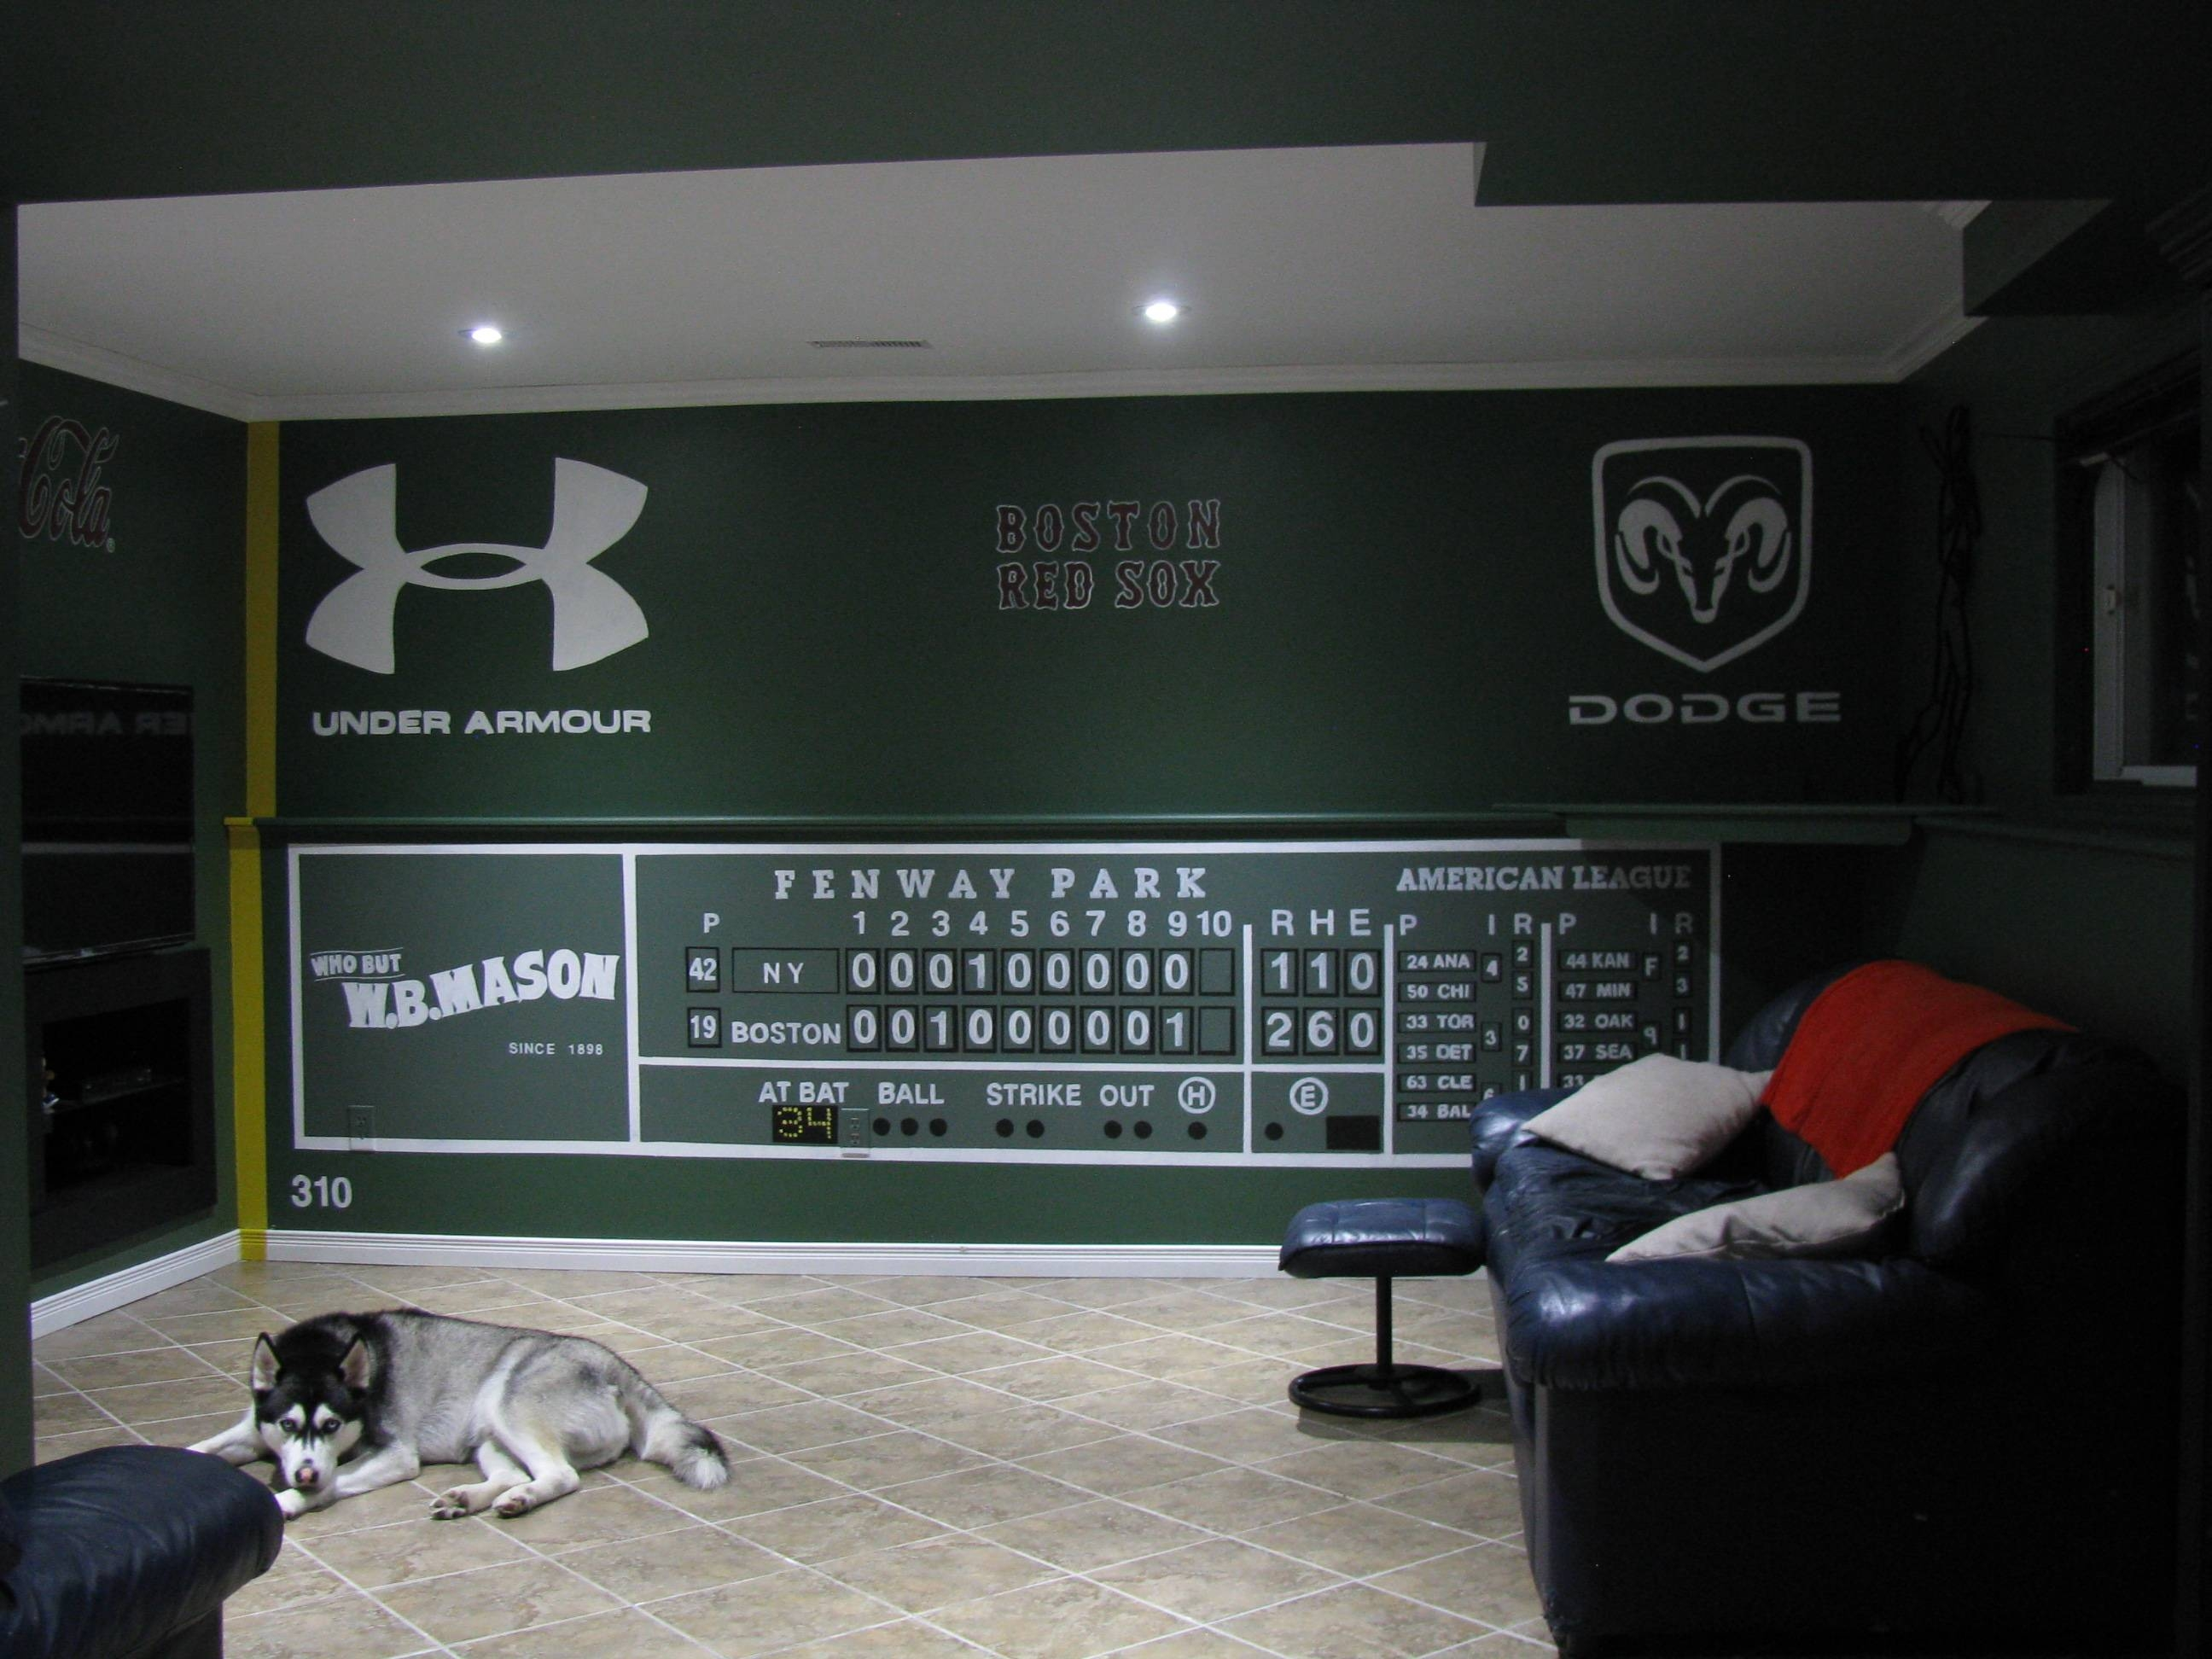 Jordans Red Sox Promotion 2017 Bedroom Fenway Green Monster Wall regarding Most Up-to-Date Boston Red Sox Wall Art